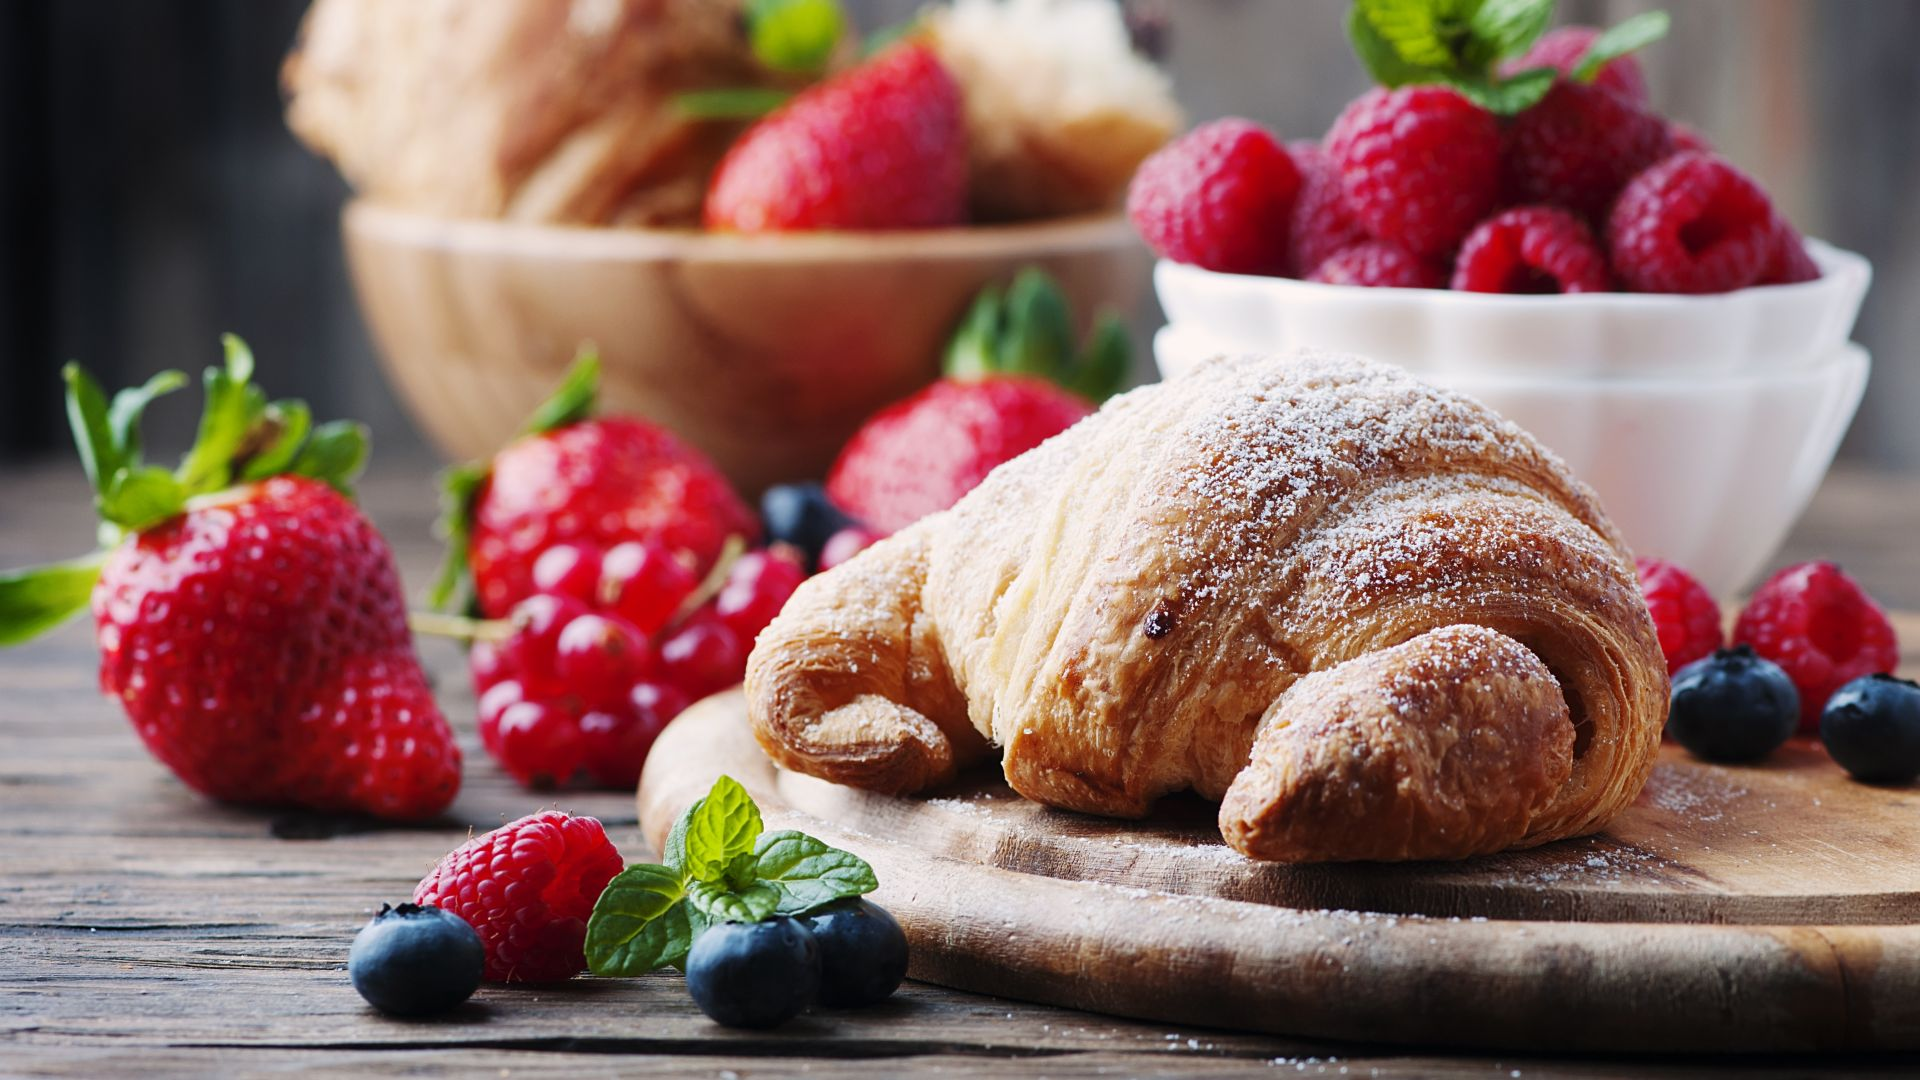 French croissants, fruit, berries, strawberry, raspberry, delicious, 4k (horizontal)